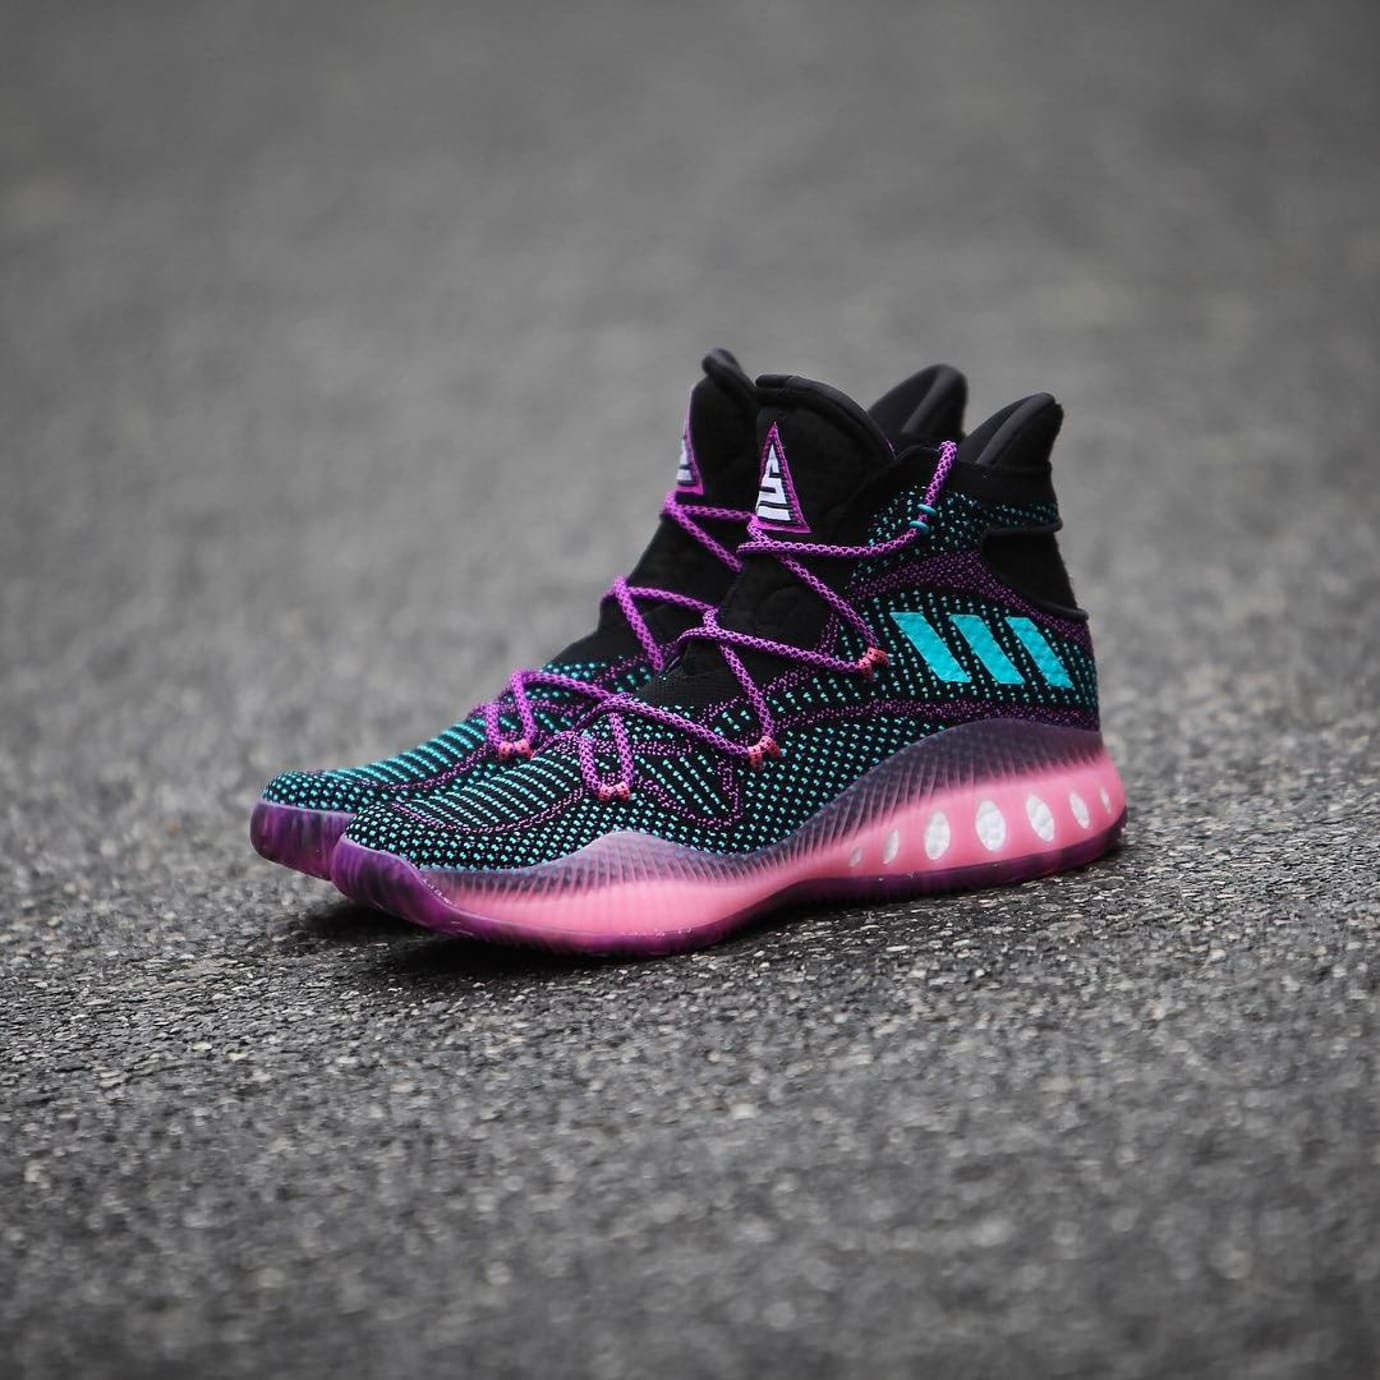 Swaggy P Adidas Crazy Explosive Black Pink PE (2)